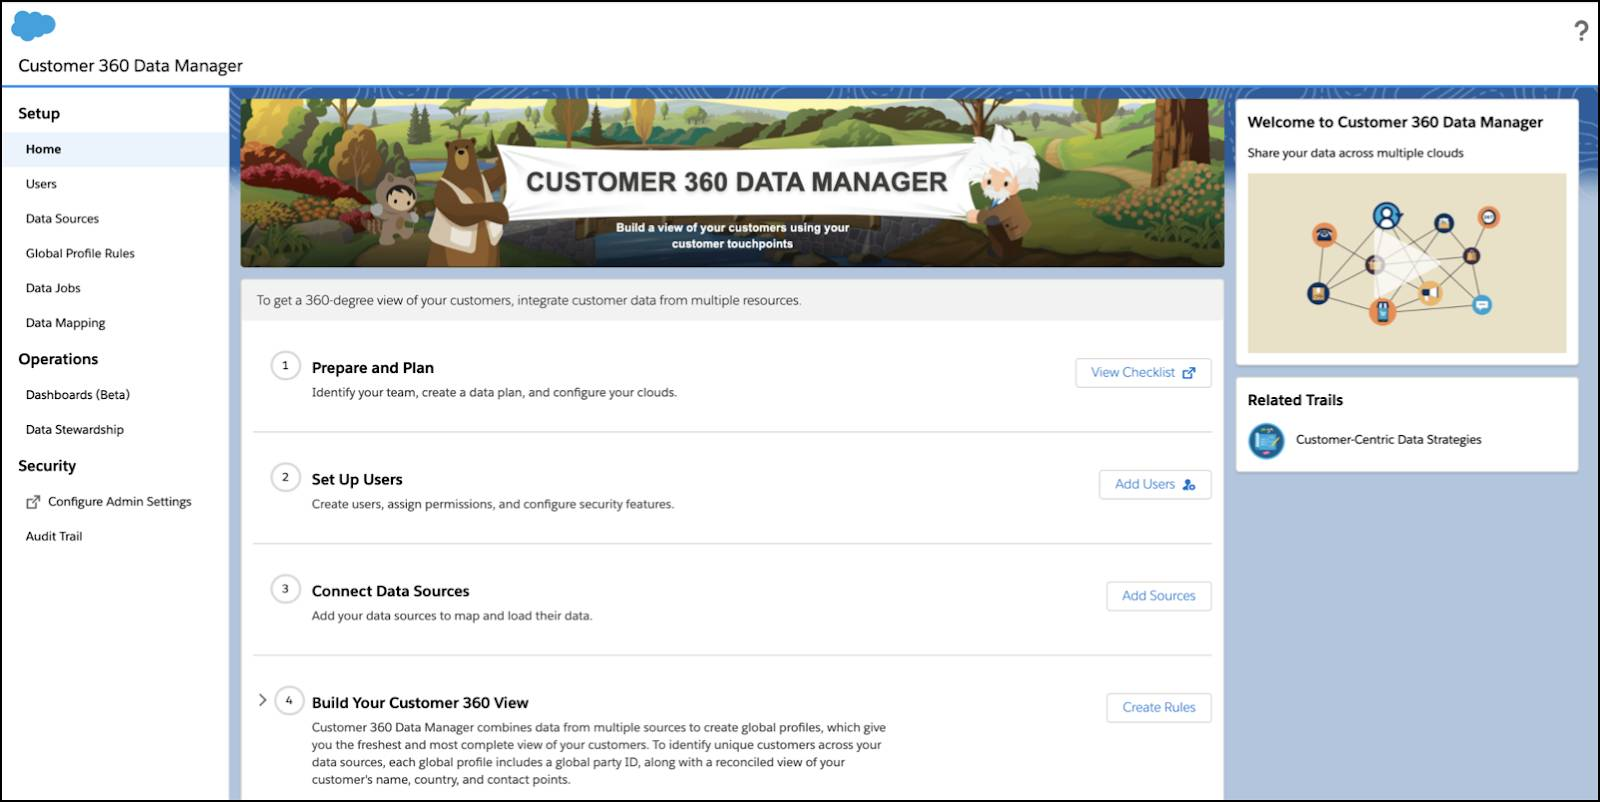 The Home page of Customer 360 Data Manager